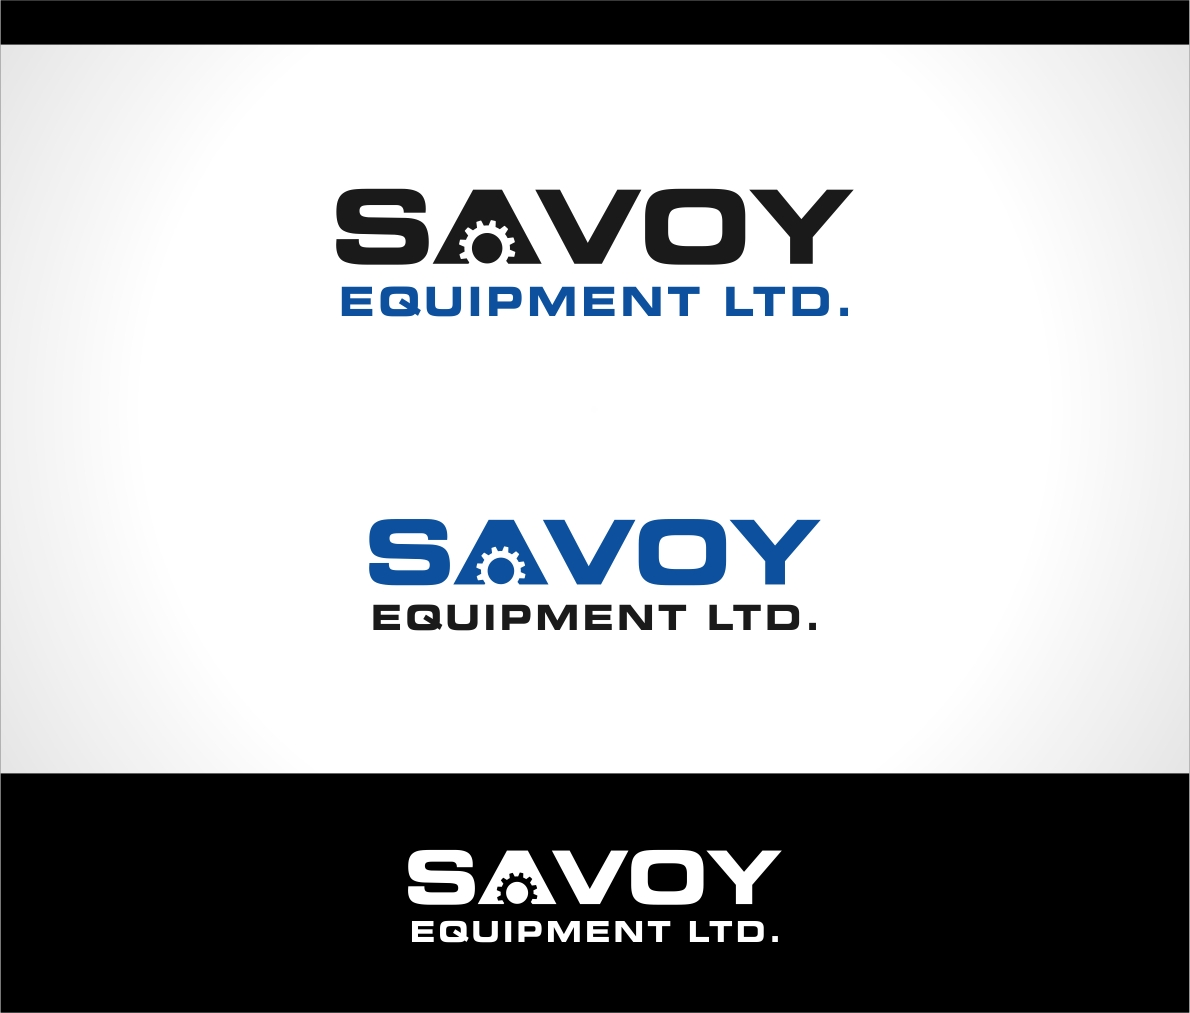 Logo Design by haidu - Entry No. 77 in the Logo Design Contest Inspiring Logo Design for Savoy Equipment Ltd..